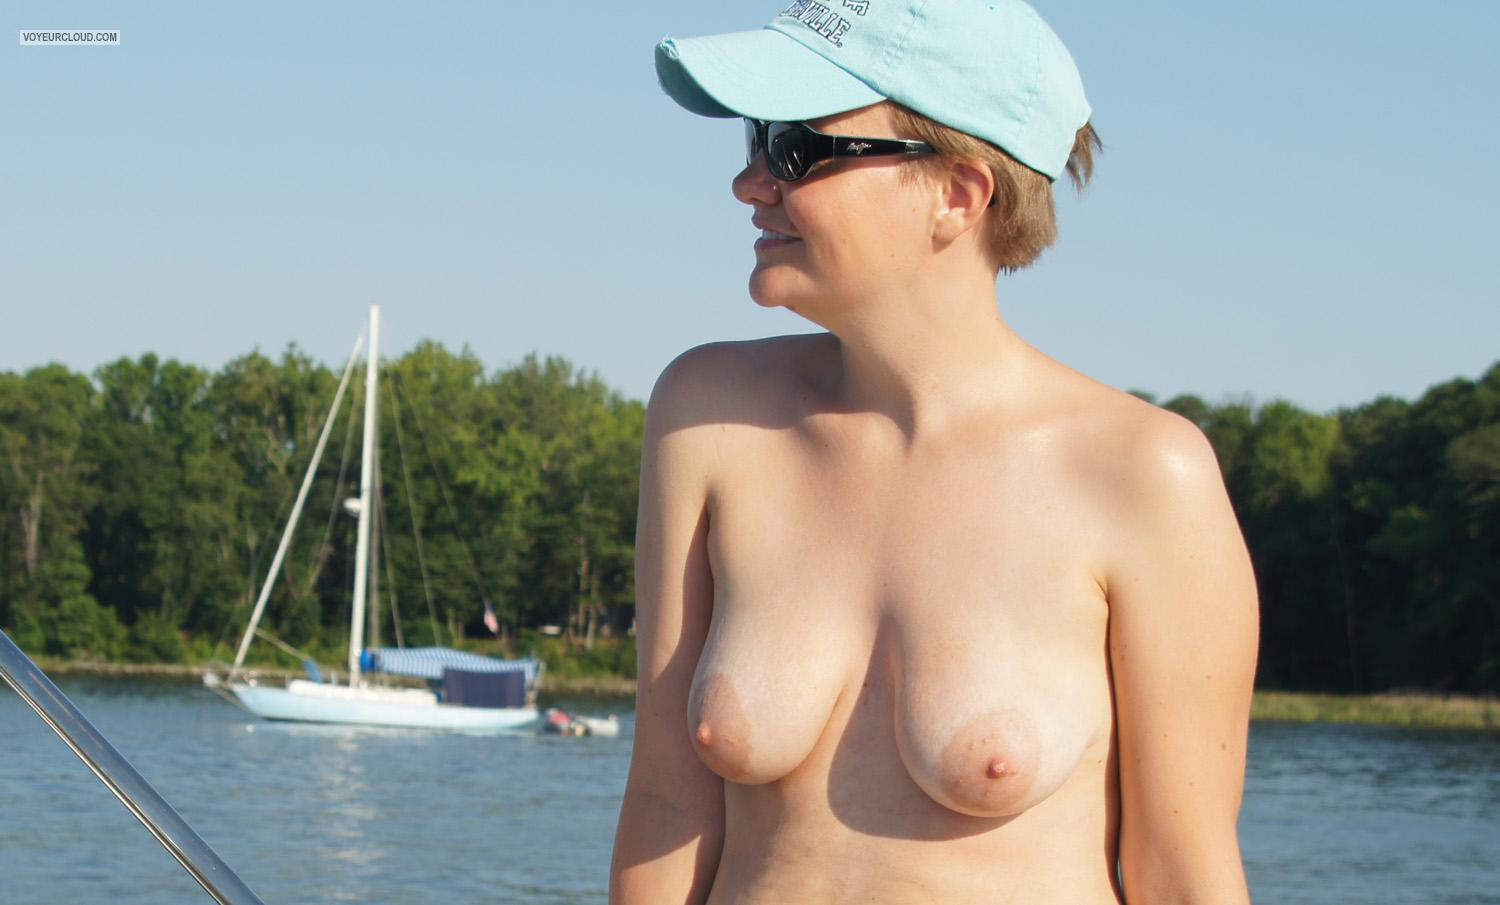 Tit Flash: Girlfriend's Medium Tits - Topless Wicked from United Kingdom